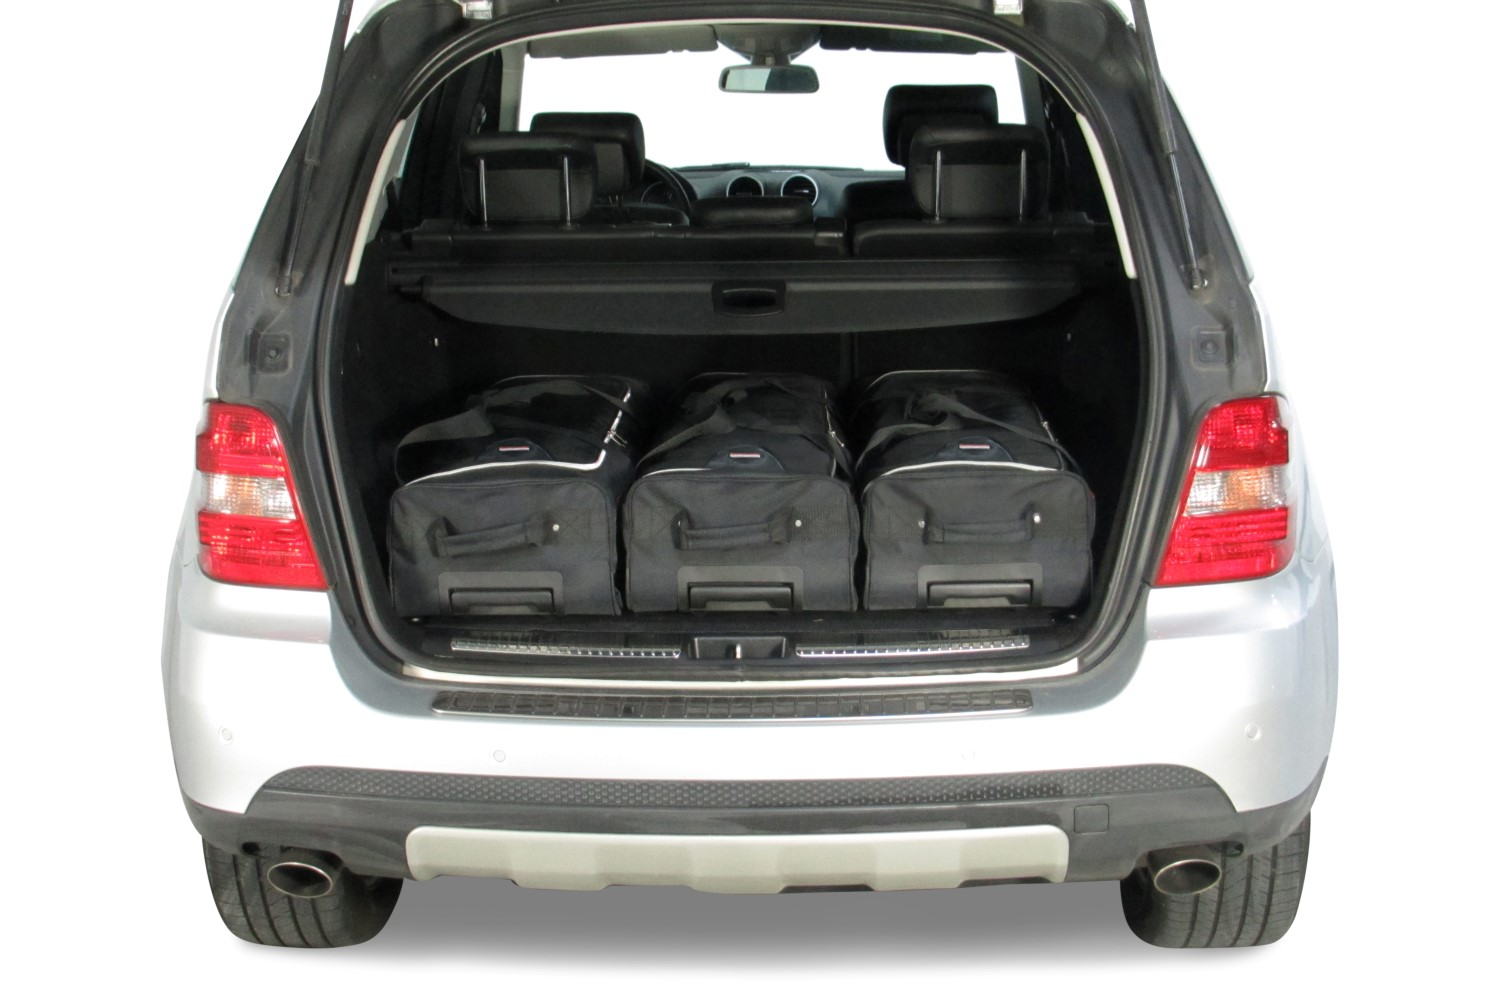 Ml gle mercedes benz ml w164 2005 2011 car bags for Mercedes benz backpack